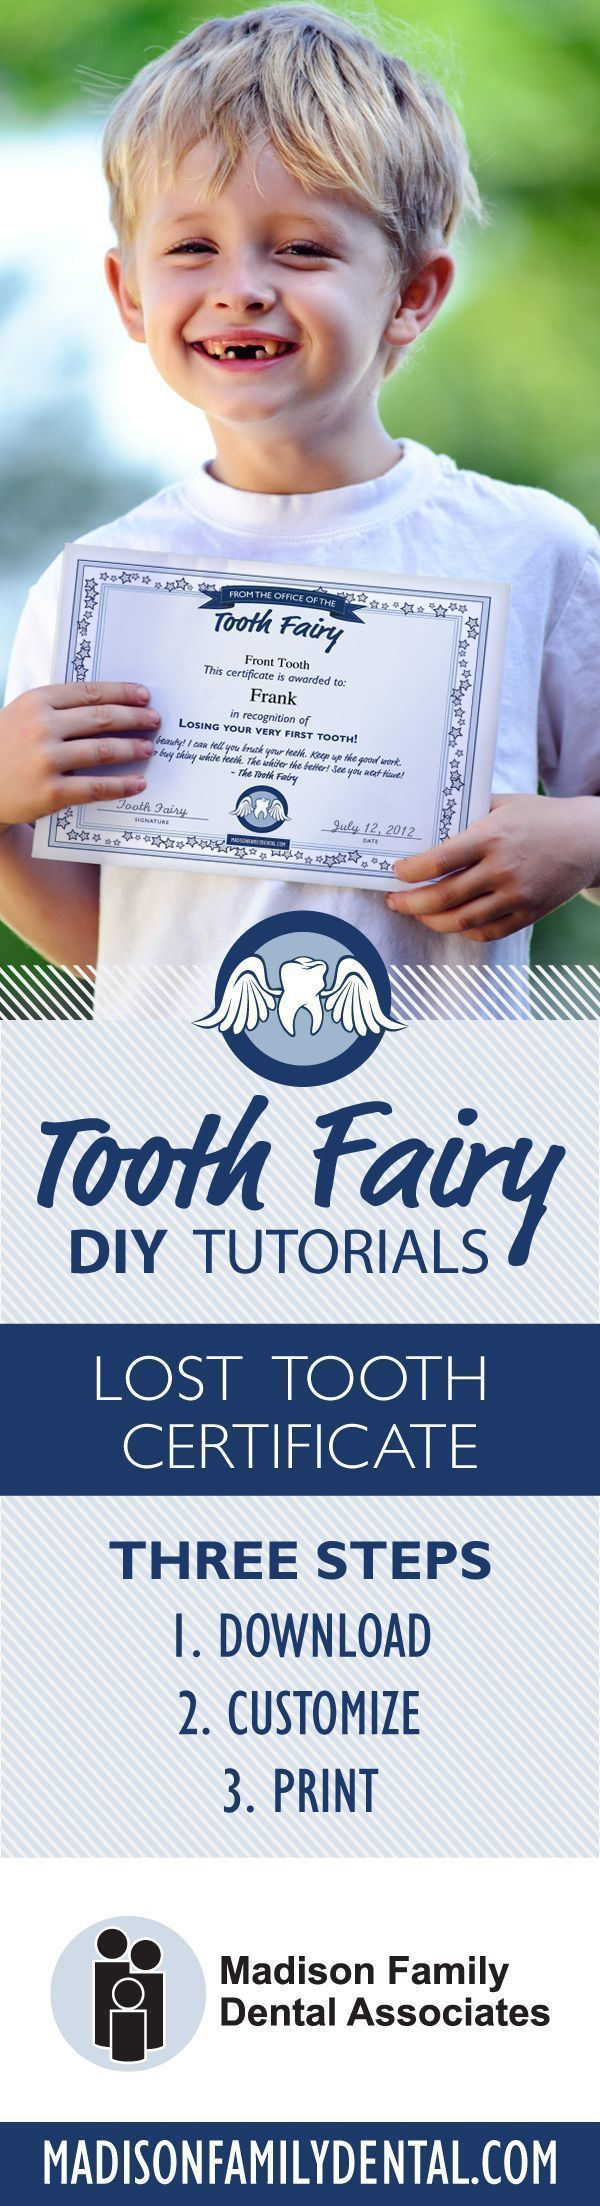 kidfriendly tooth fairy ideas to prepare for losing teeth and the much anticipated visit from the Tooth Fairy herself Customize your Tooth Fairy Certificate Template free...